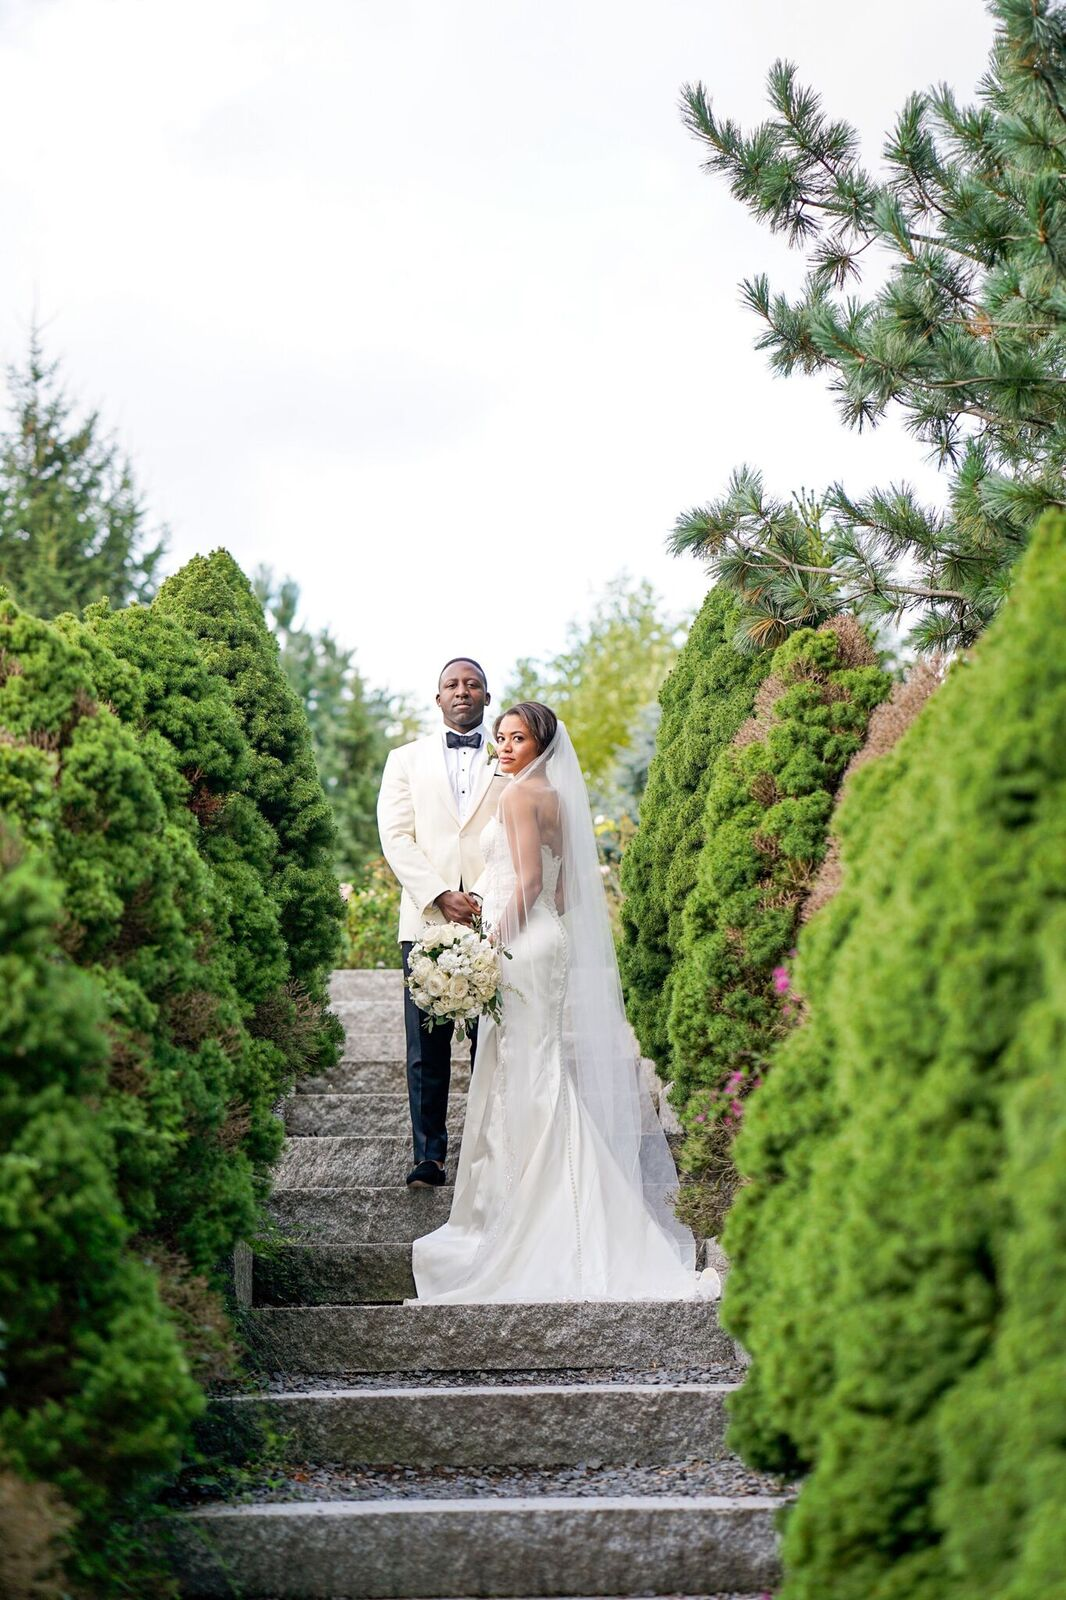 Garden wedding inspiration plus venues every engaged couple should consider and how to make your garden wedding unique! Read the blog to get ideas and get the free printable venue guide.